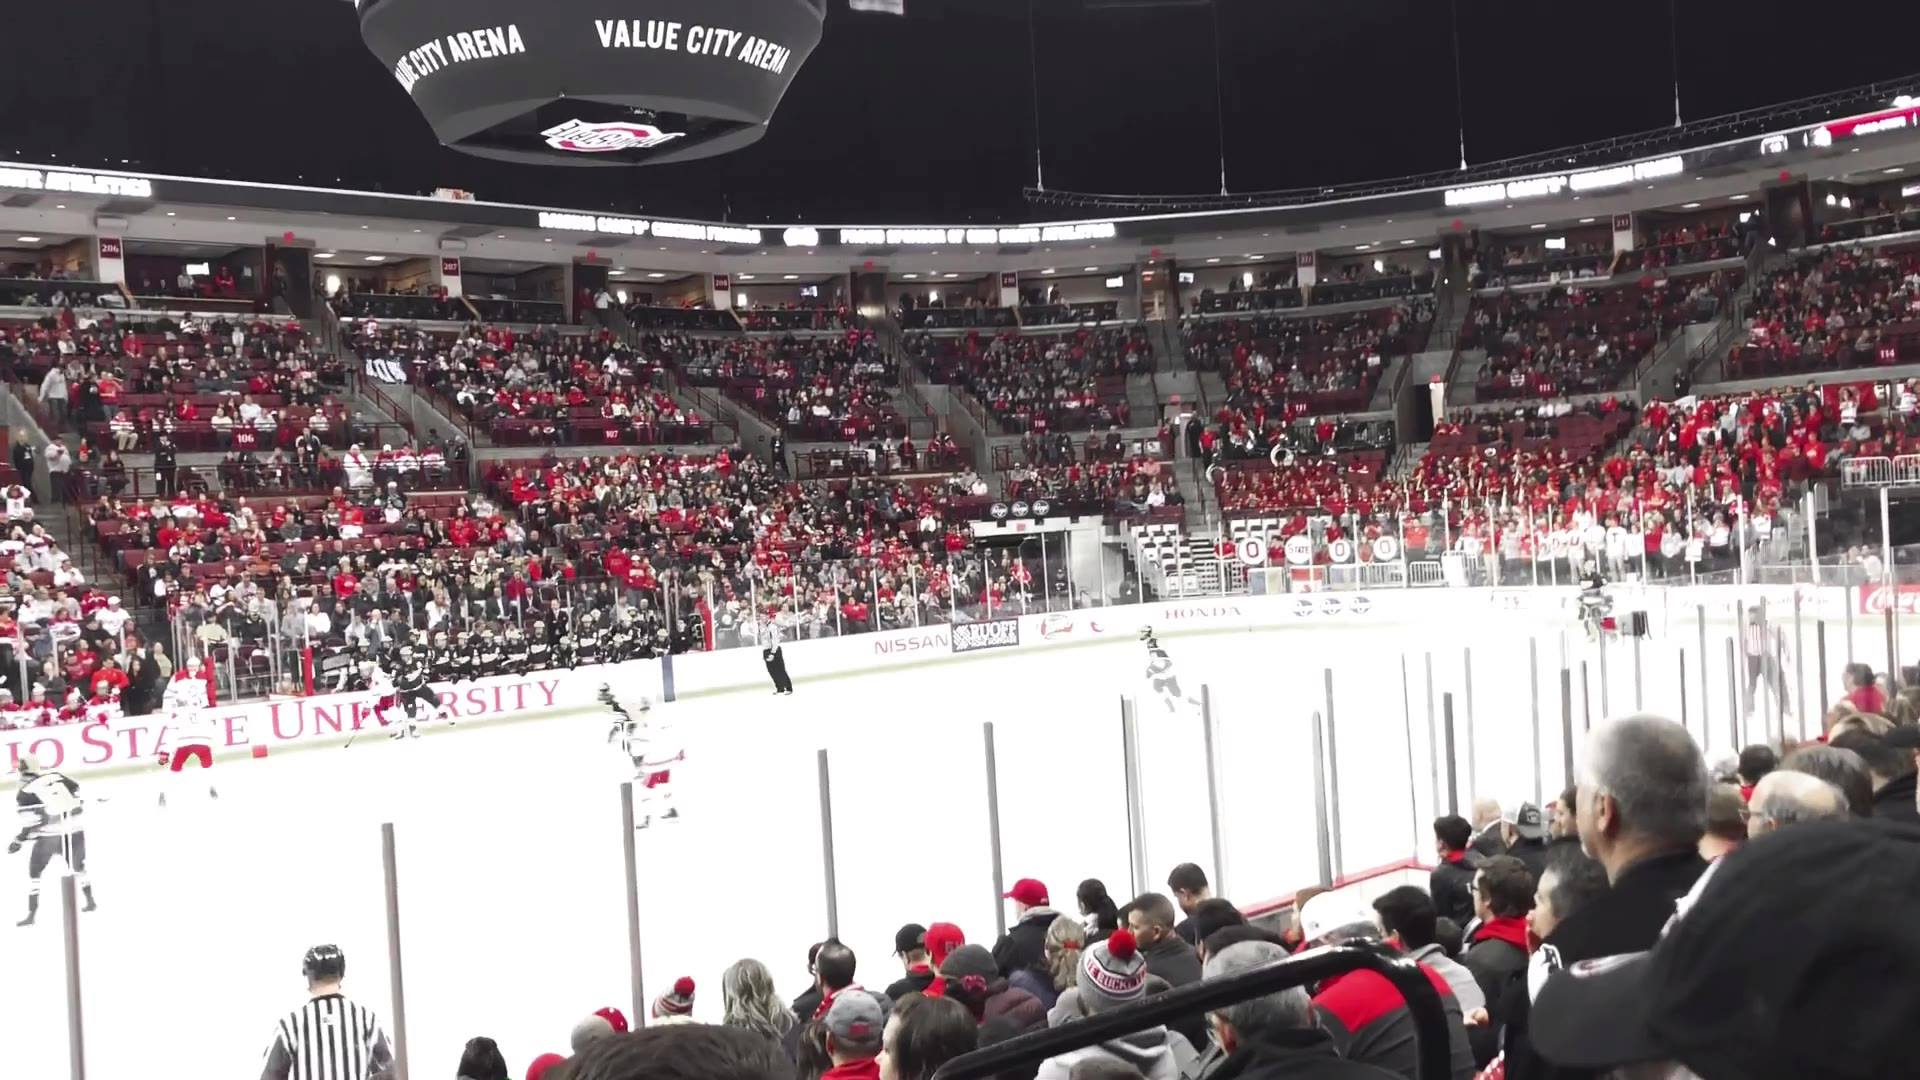 Both Dads & Daughters of Dublin AND Dads & Sons had events this weekend.  The Son's went to see a hockey game Friday night.  #4 OSU playing Xichigan.  All the good Dads were there and pretty sure they bought about 160 hot pretzels if I had to hazard